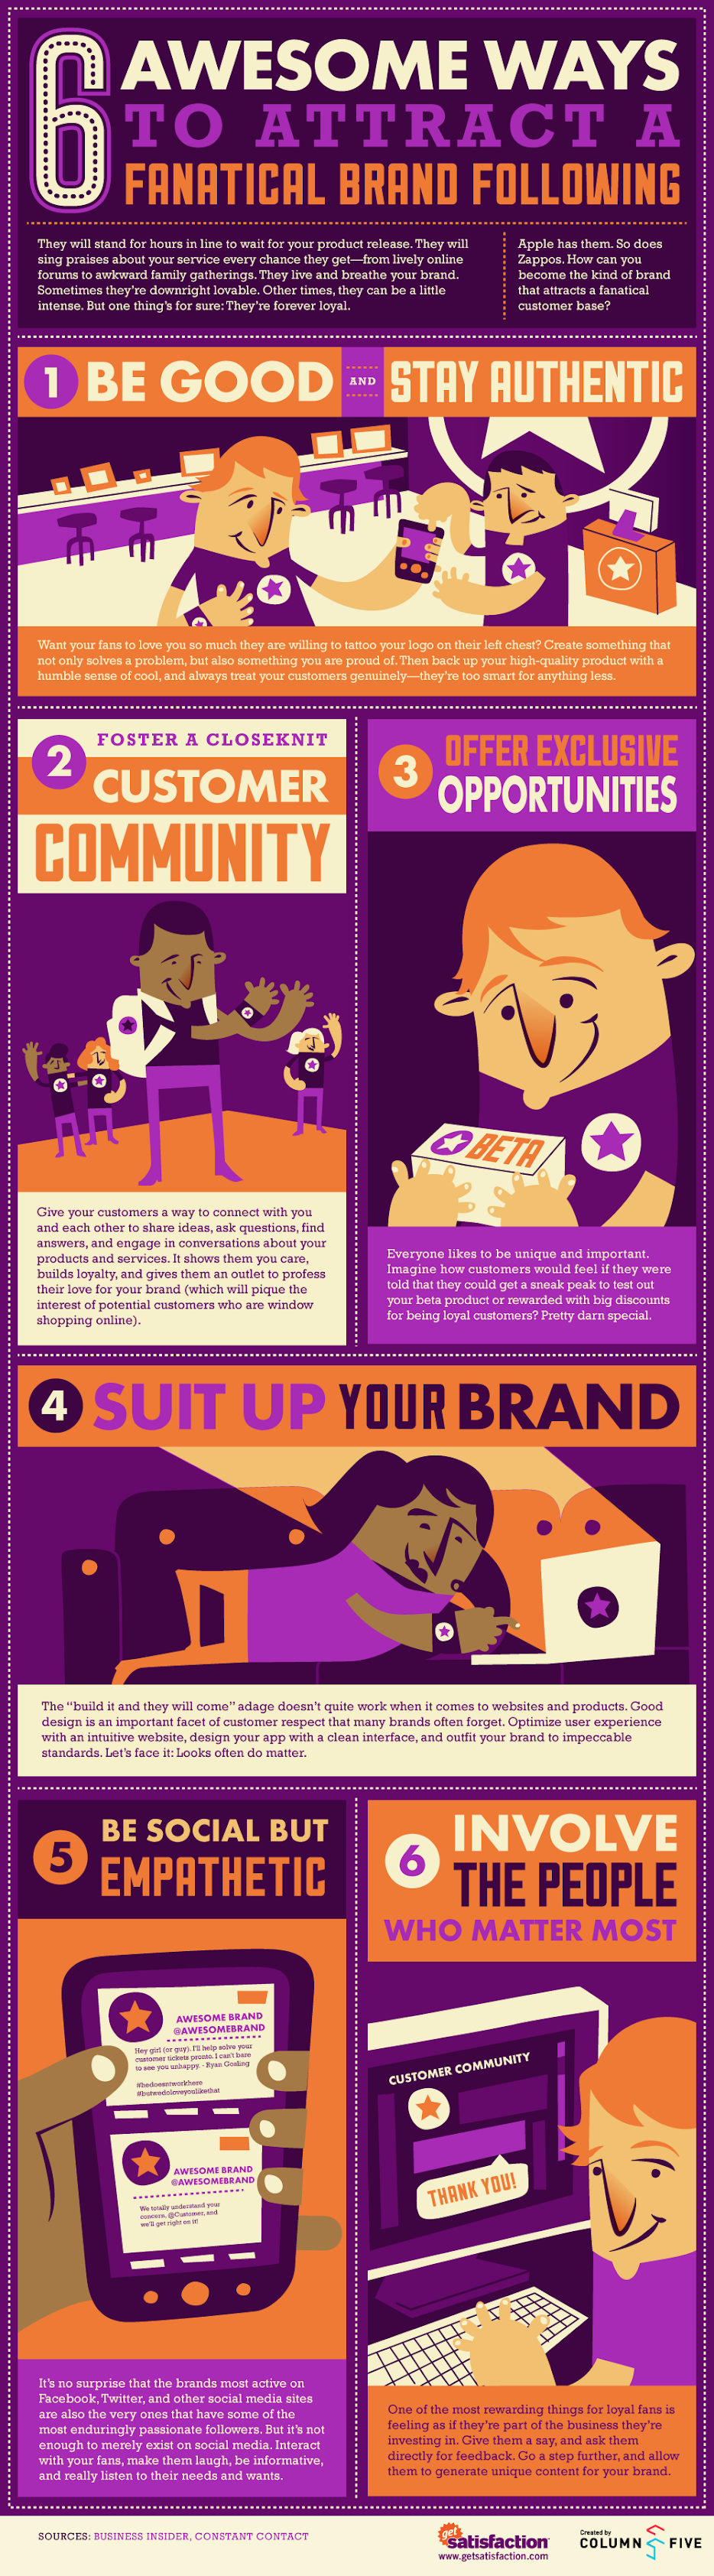 6 Ways to Attract a Fanatical Brand Following